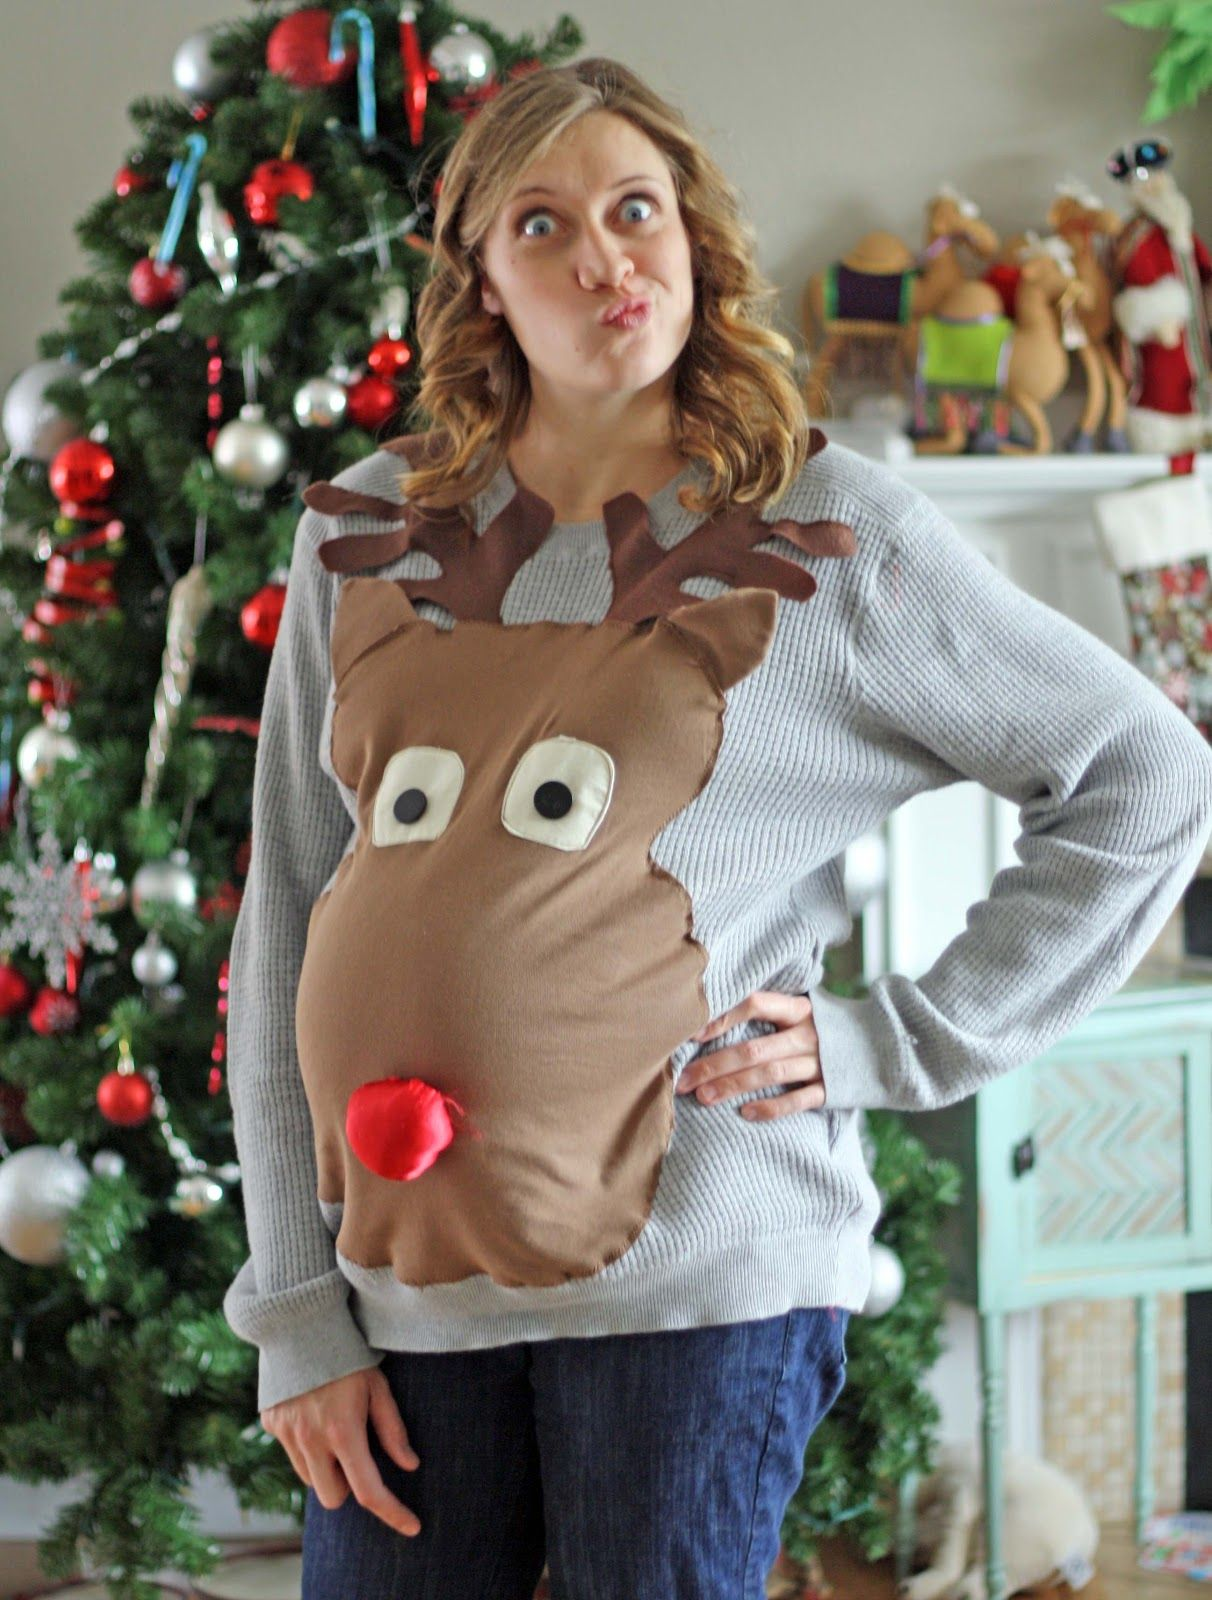 Ugly sweater christmas party maternity style ba ha ha christmas ugly sweater christmas party maternity style ba ha ha ombrellifo Images